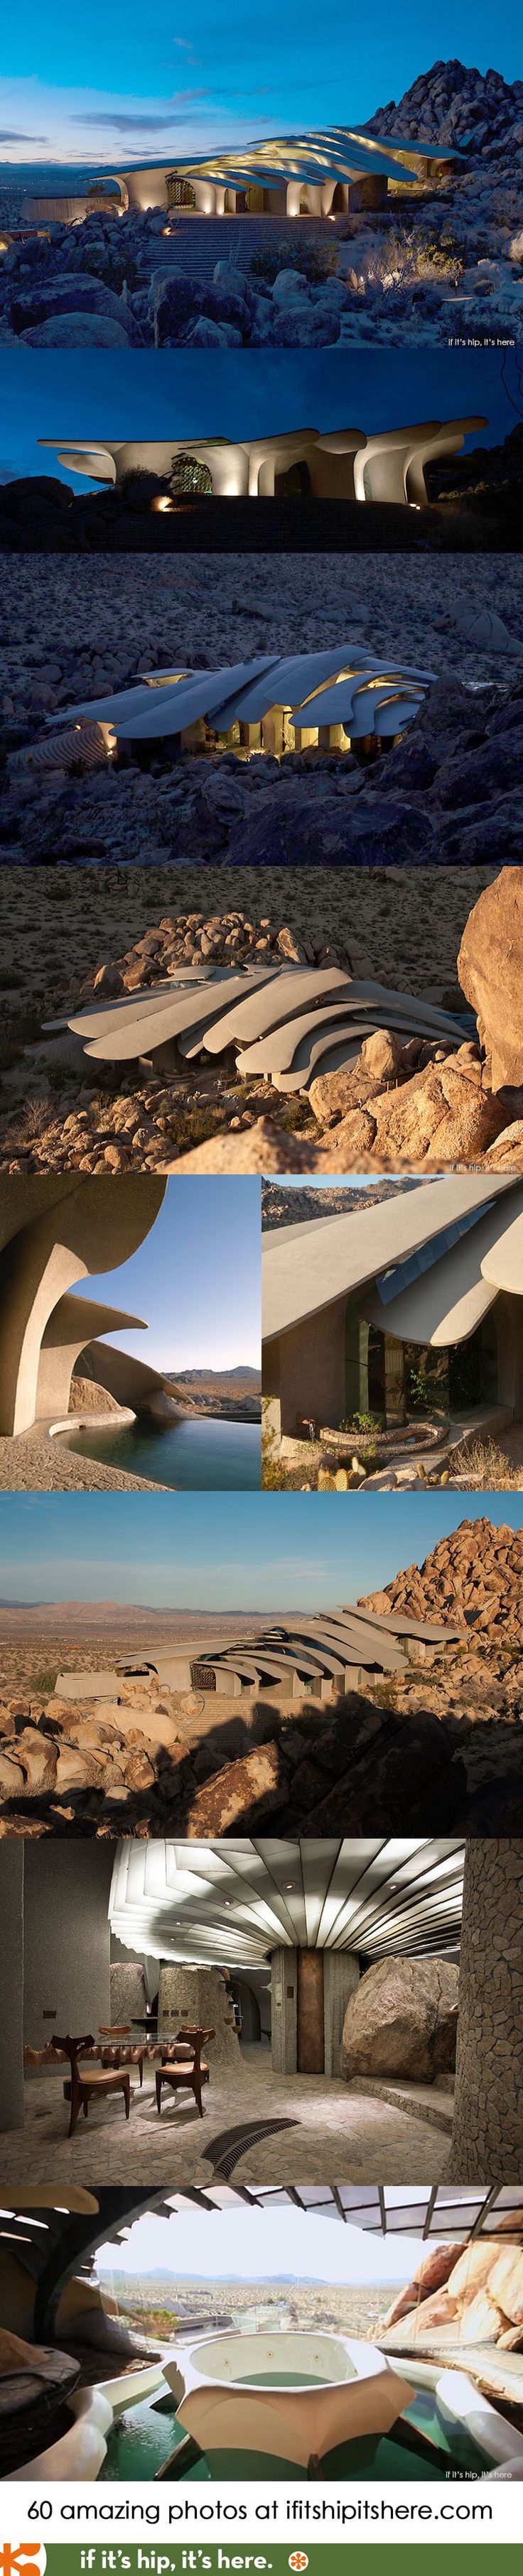 The Joshua Tree Desert House - The Desert House is simply a stunning example of architecture as art. Located in picturesque Joshua Tree — right in Southern California's High Desert — the home is at a comfortable equilibrium with its barren desert environment - Architect Ken Kellogg...x